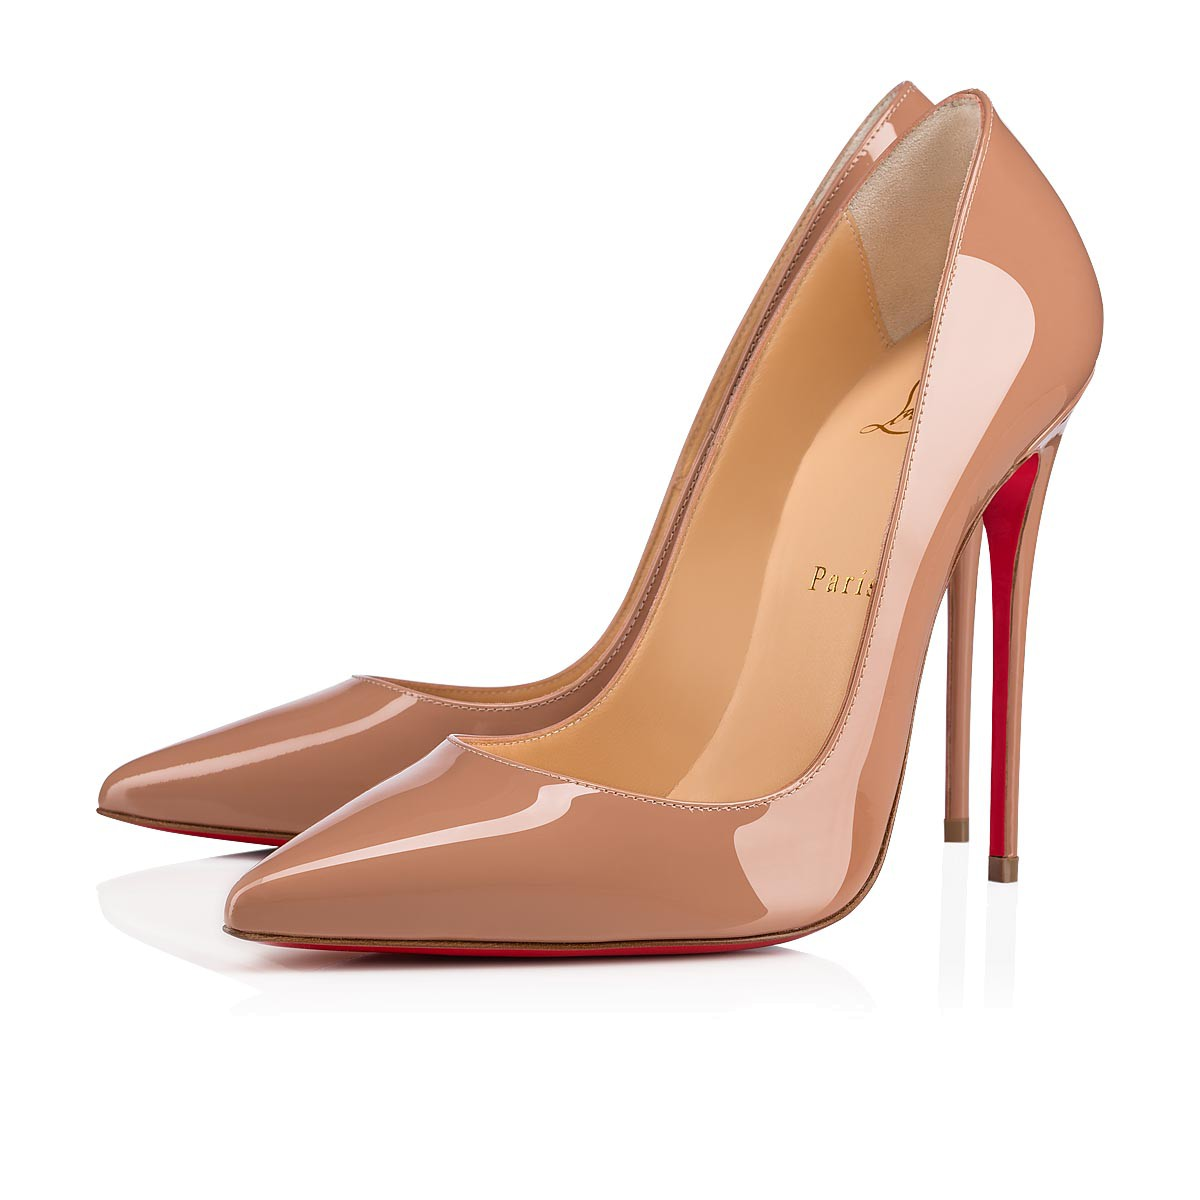 bd15681afd32 So Kate 120 Nude Patent Leather - Women Shoes - Christian Louboutin